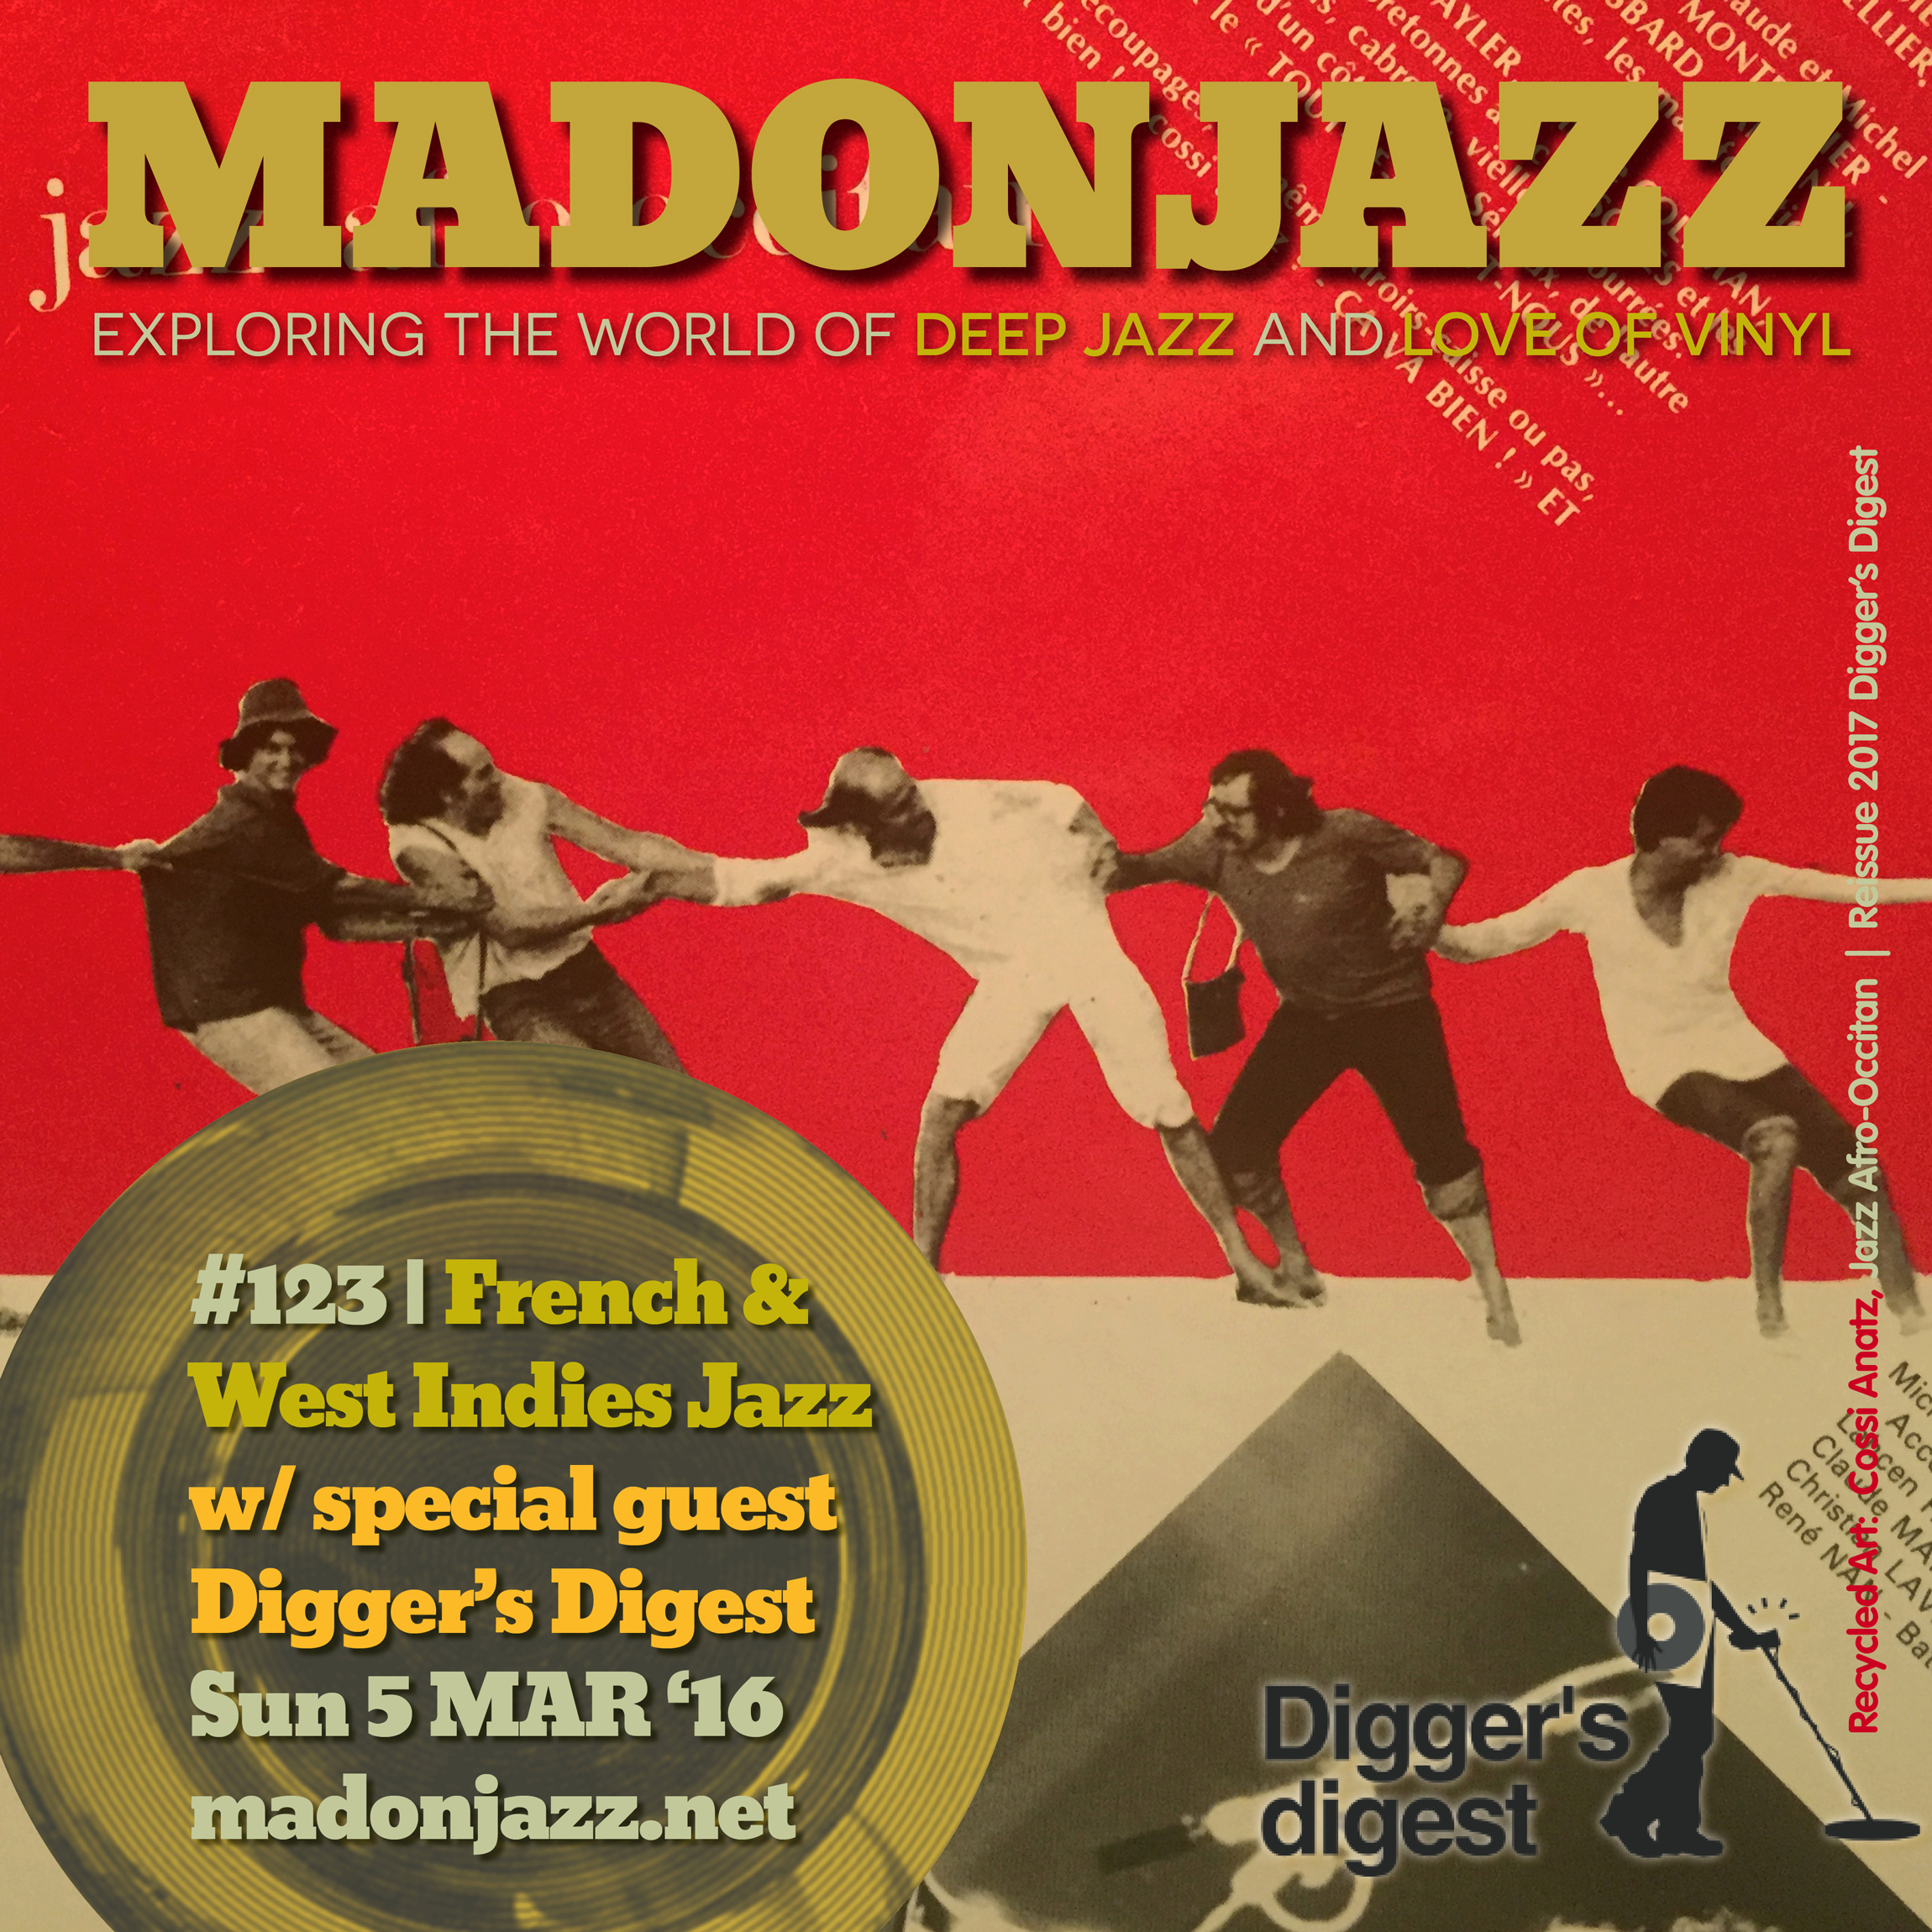 MADONJAZZ #123 French & west Indies Jazz w/ Digger's Digest